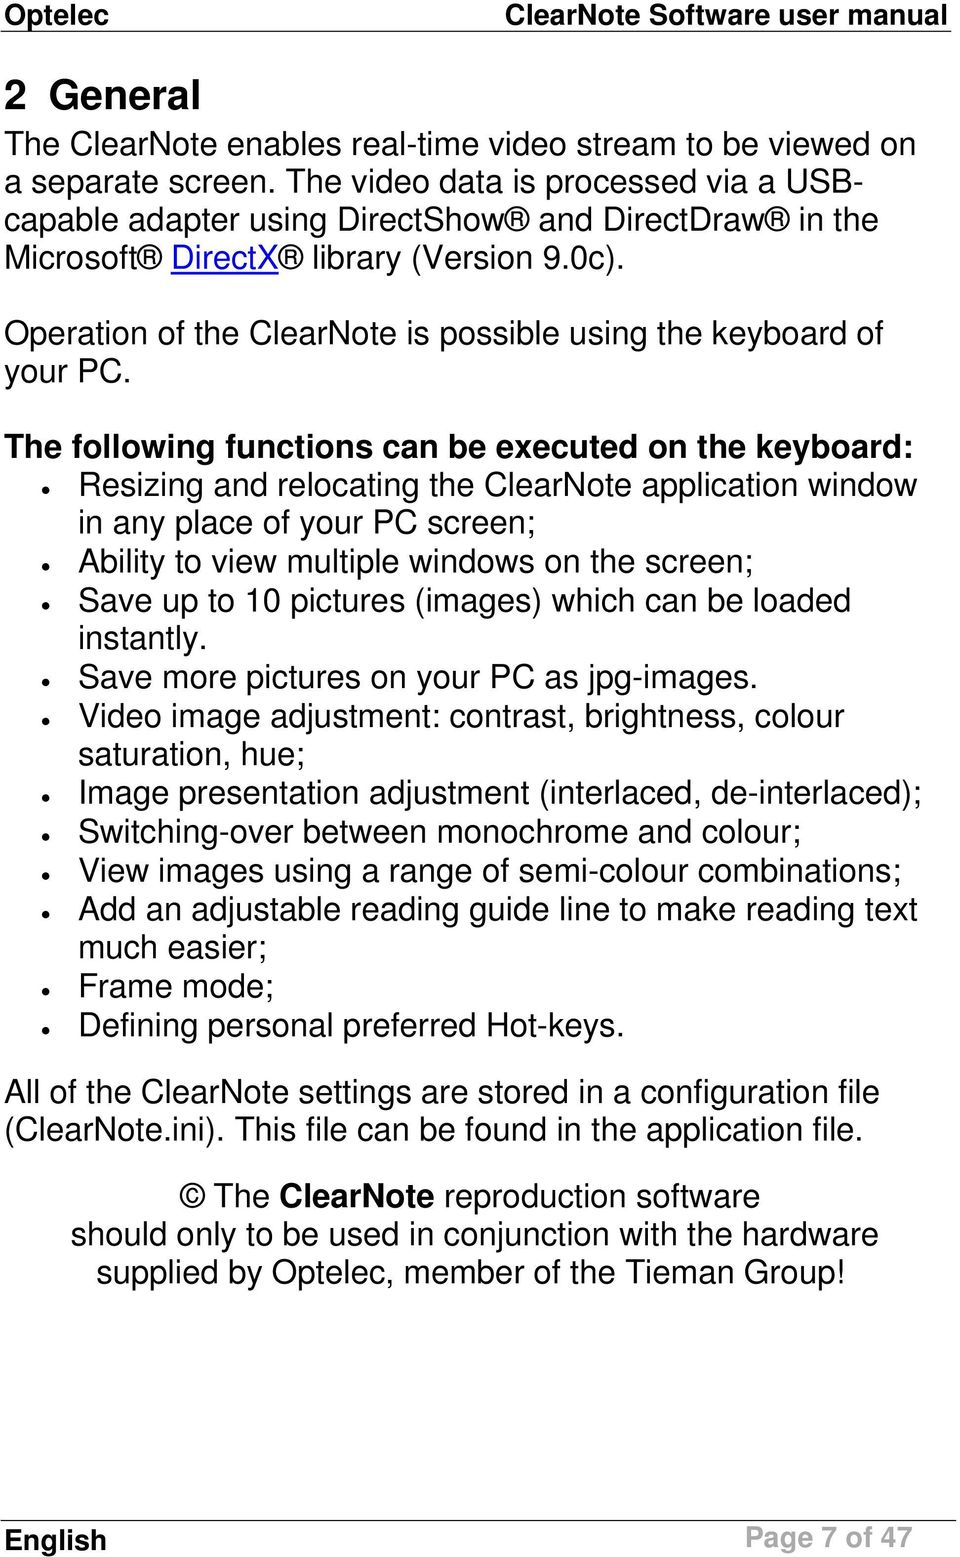 Operation of the ClearNote is possible using the keyboard of your PC.